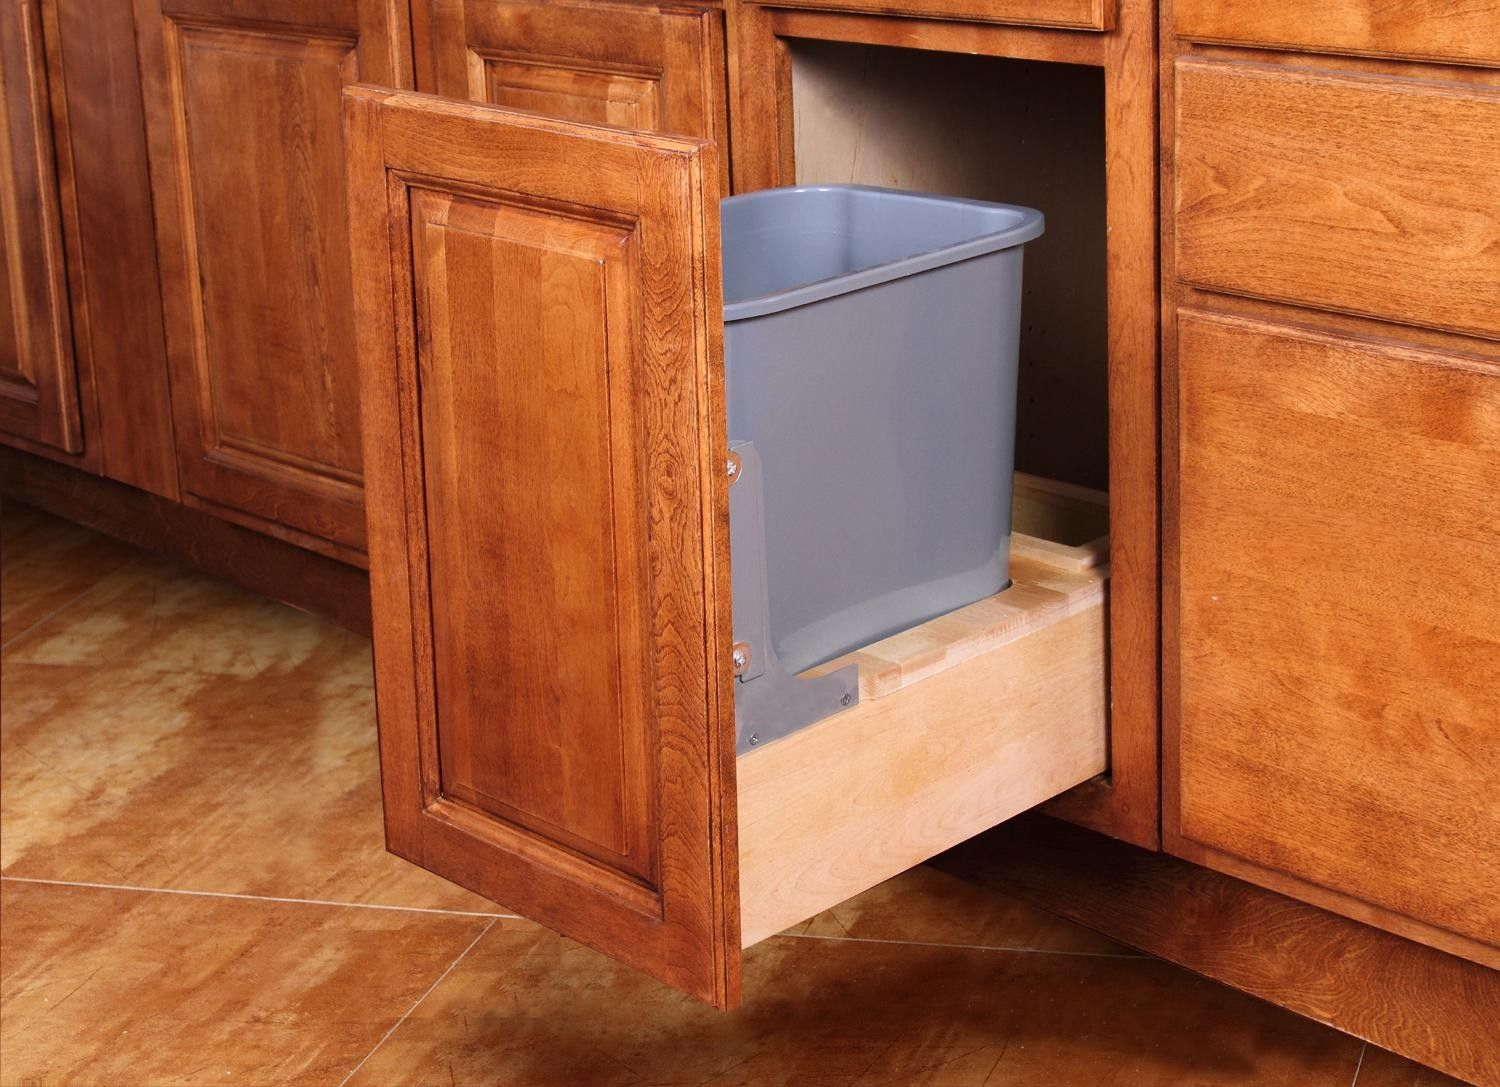 Single Pullout Waste Basket For A 15 Wide Base Cabinet Rta